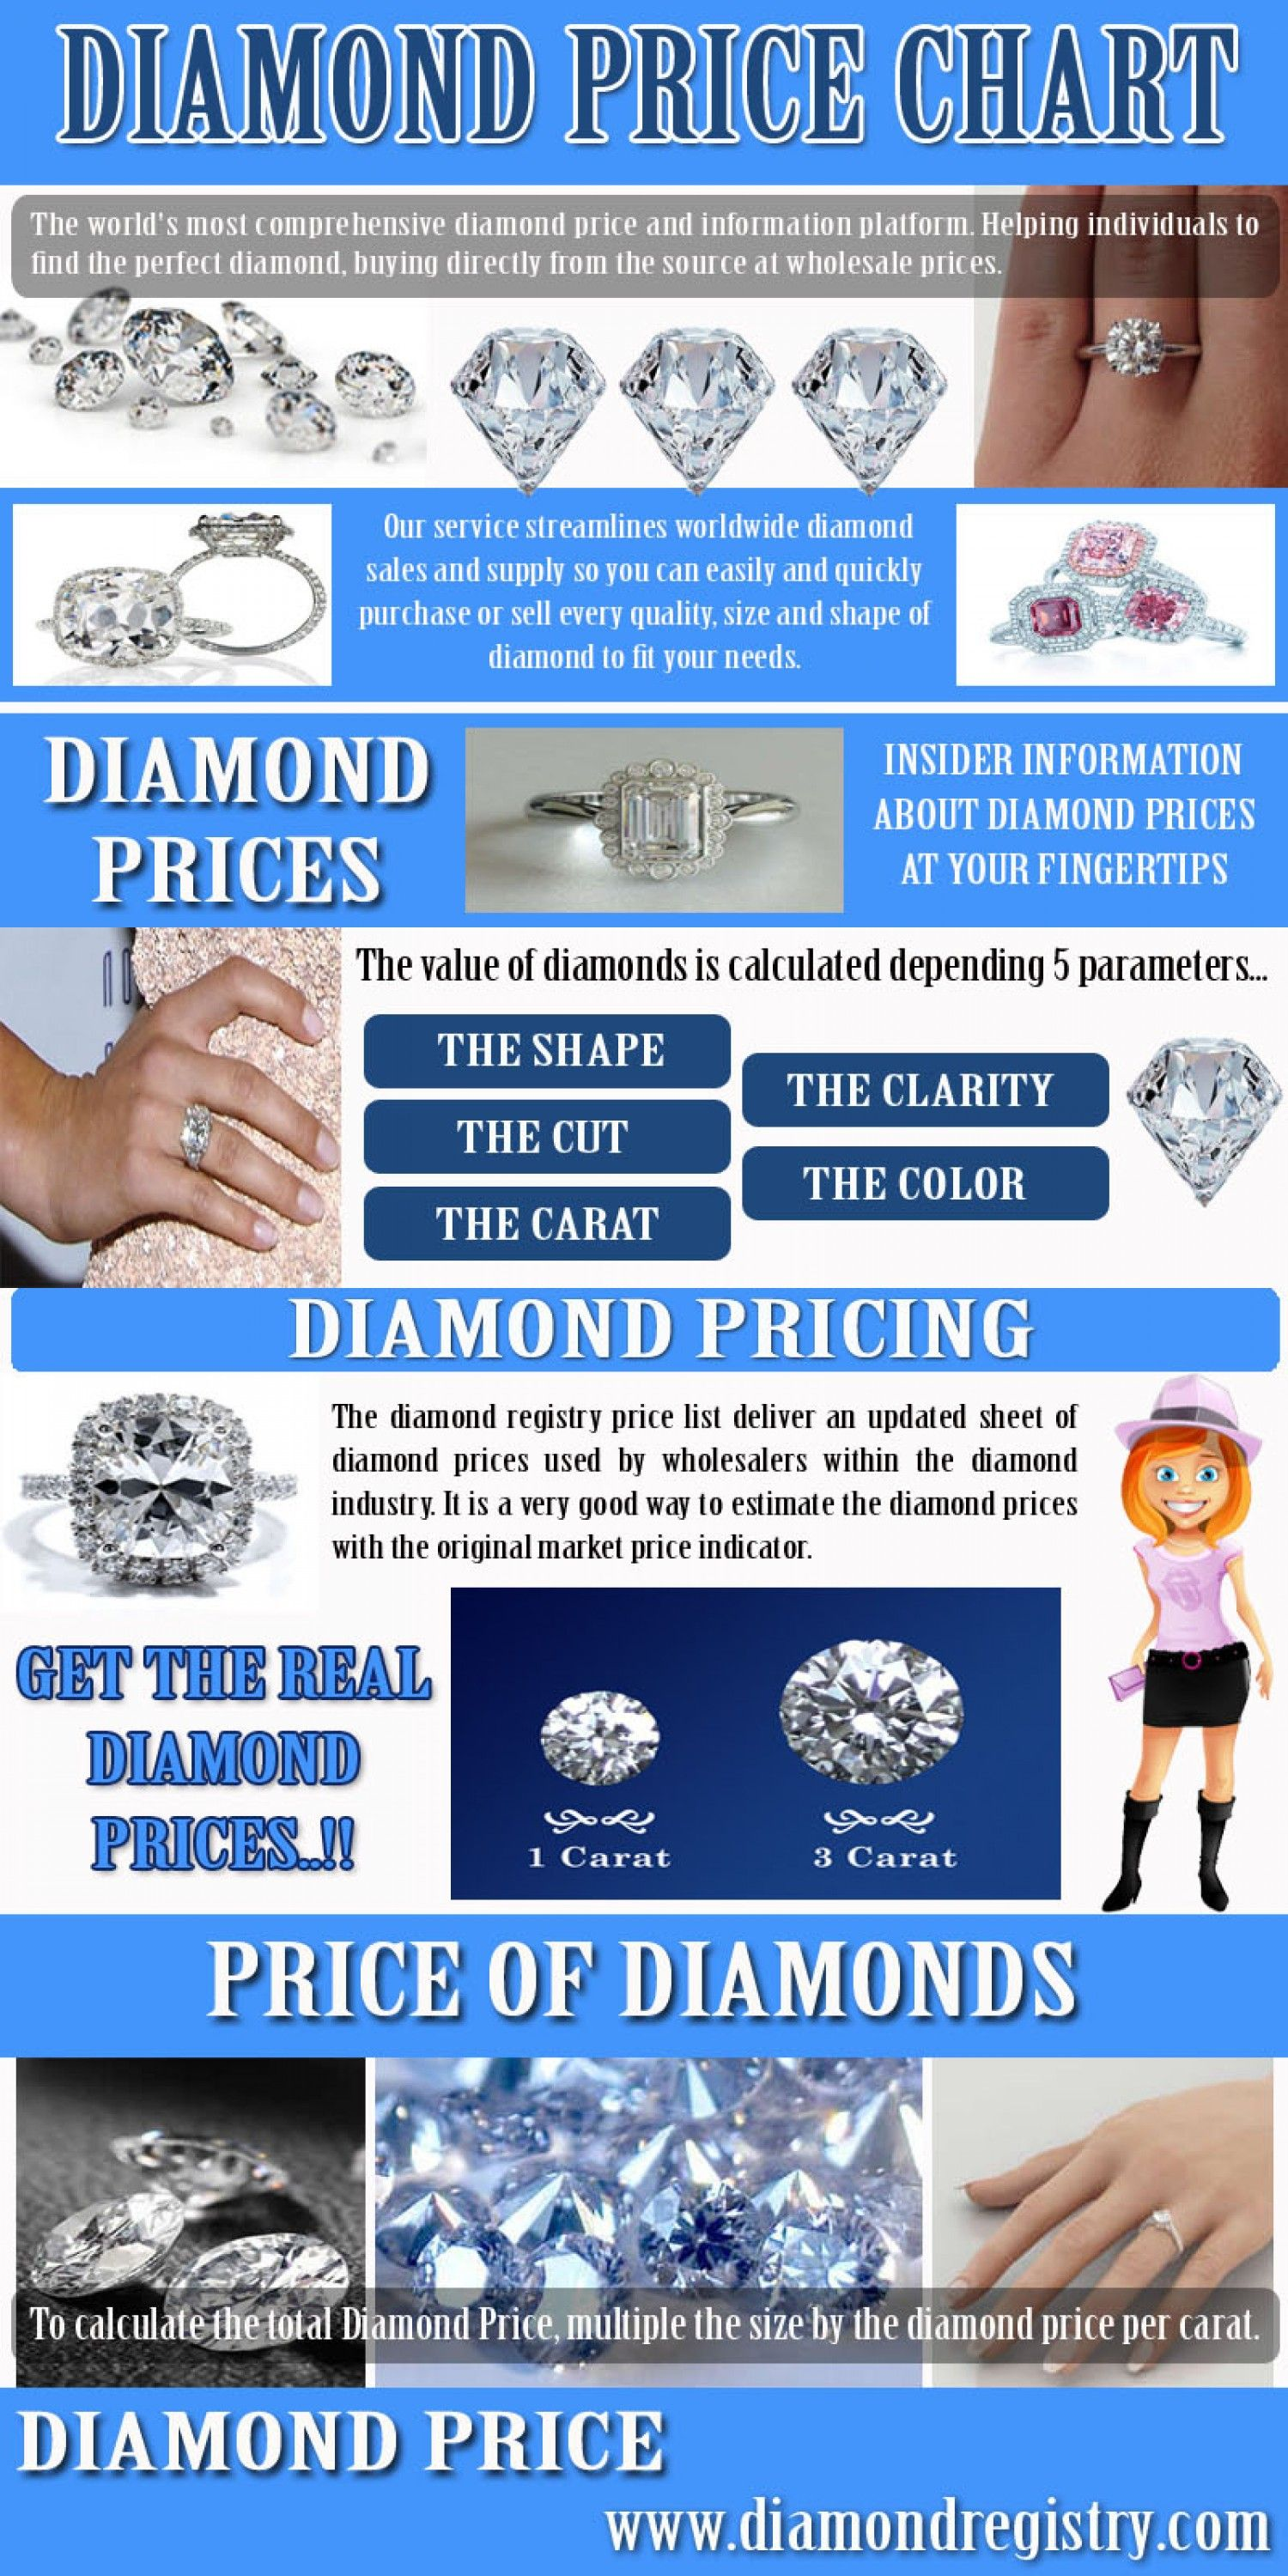 There are several basic criteria that influence diamond